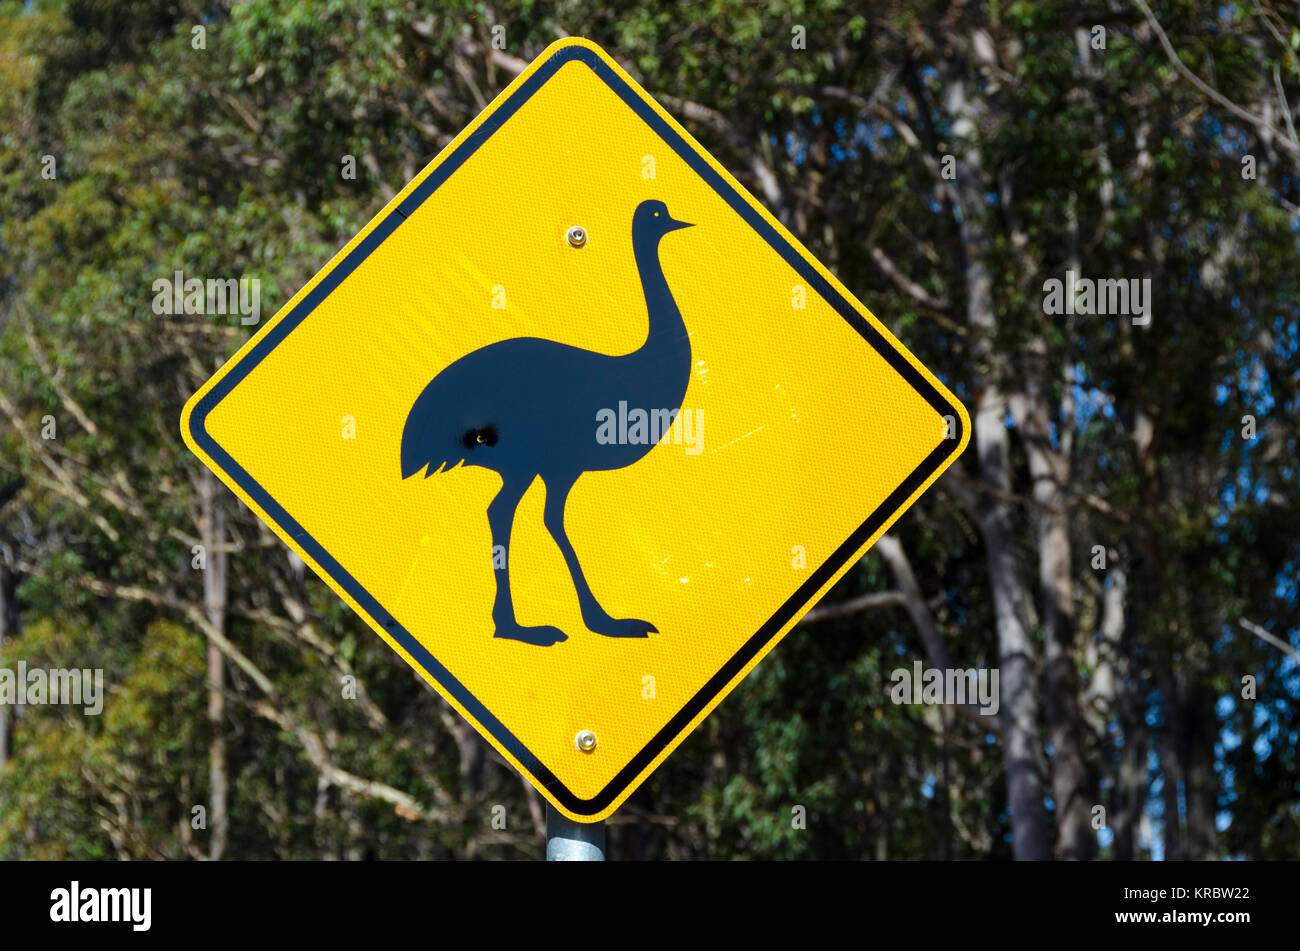 Emu road sign, Potato Point, New South Wales, Australia - Stock Image